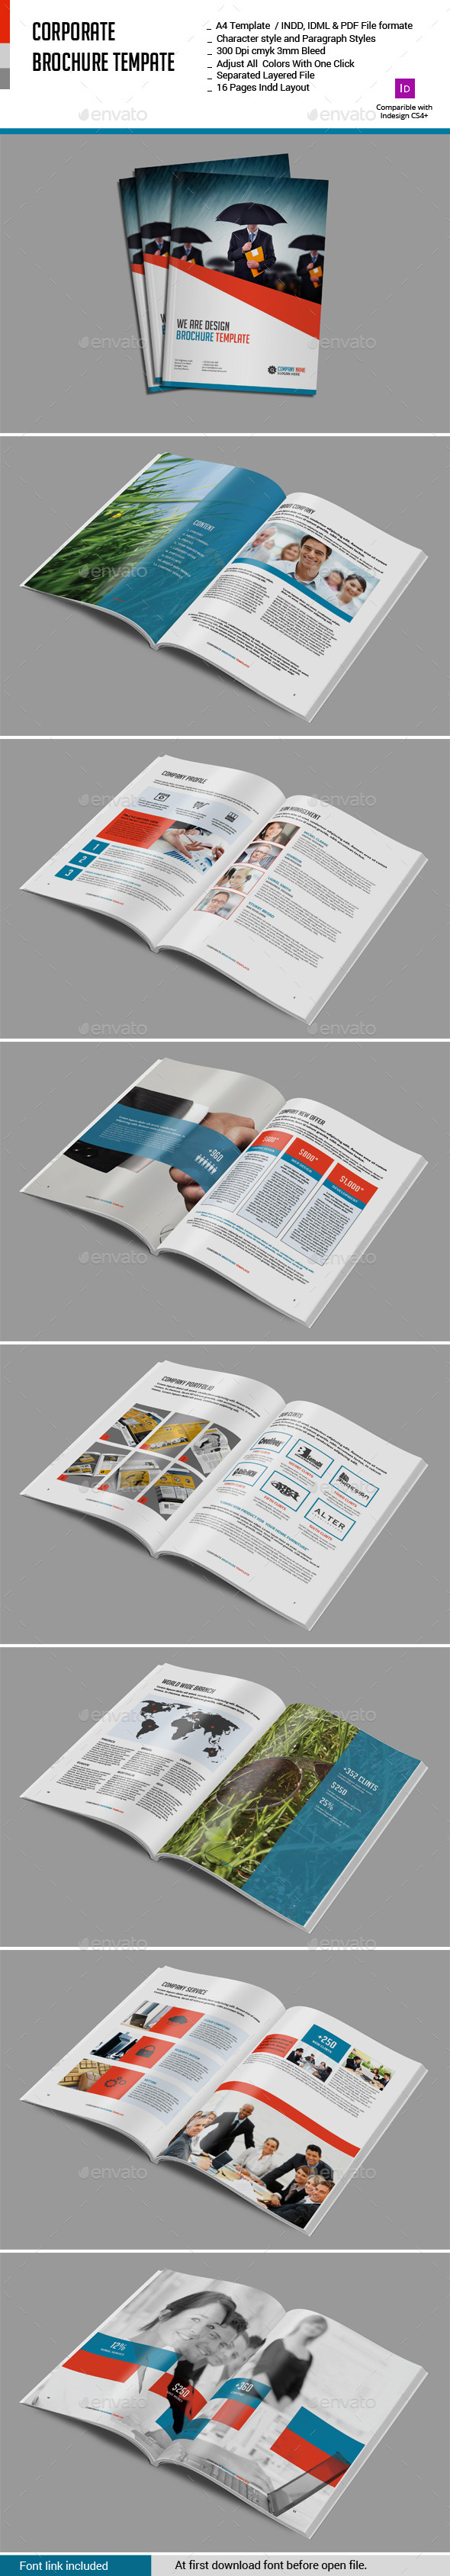 GraphicRiver Corporate Brcohure Template 11379349